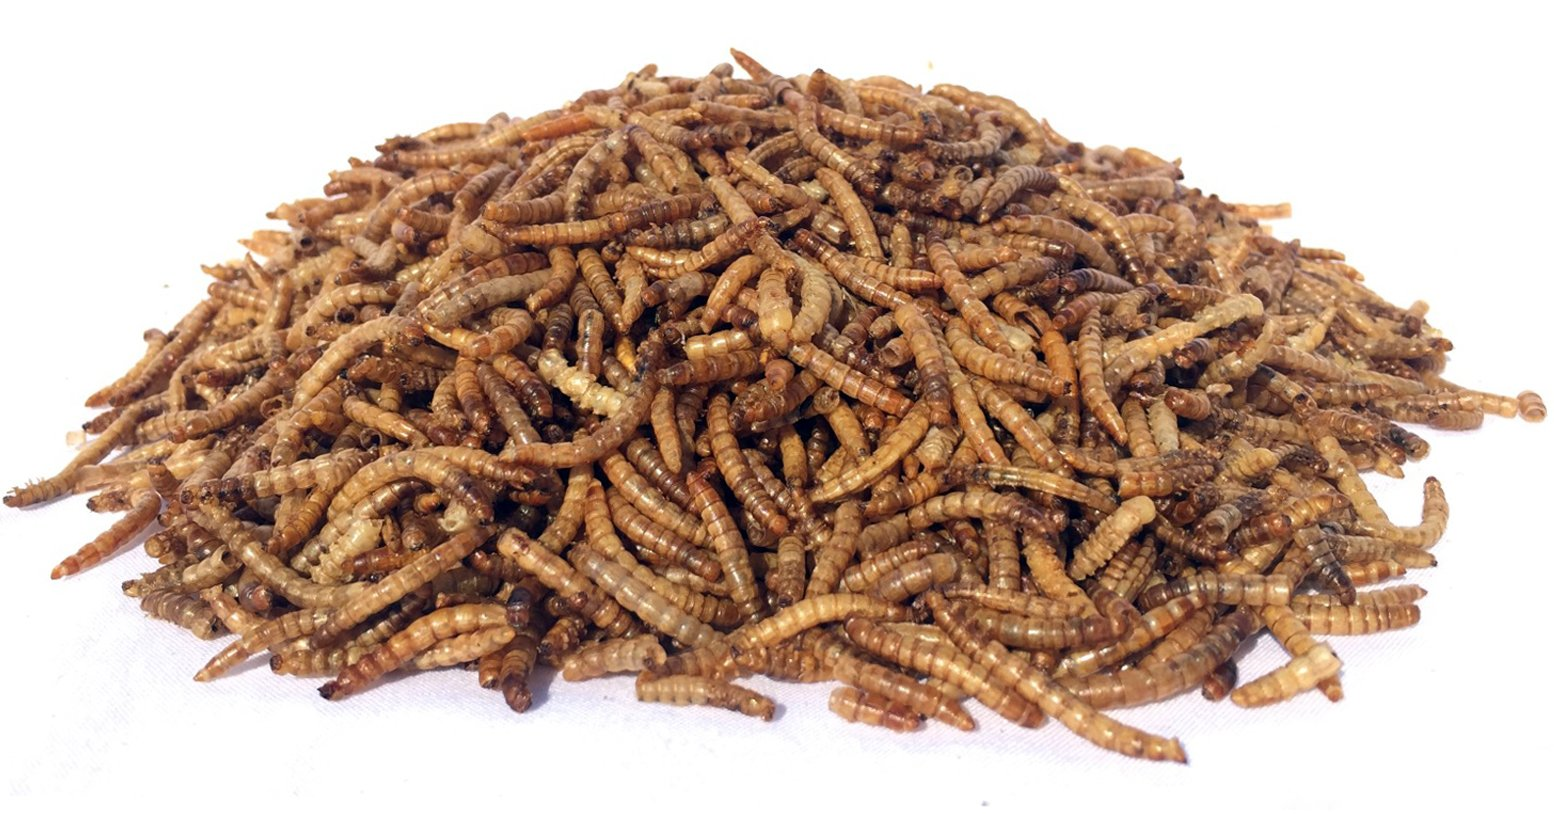 NaturesPeck Mealworm Time Dried Mealworms from (5 lbs) - For Chickens & Wild Birds